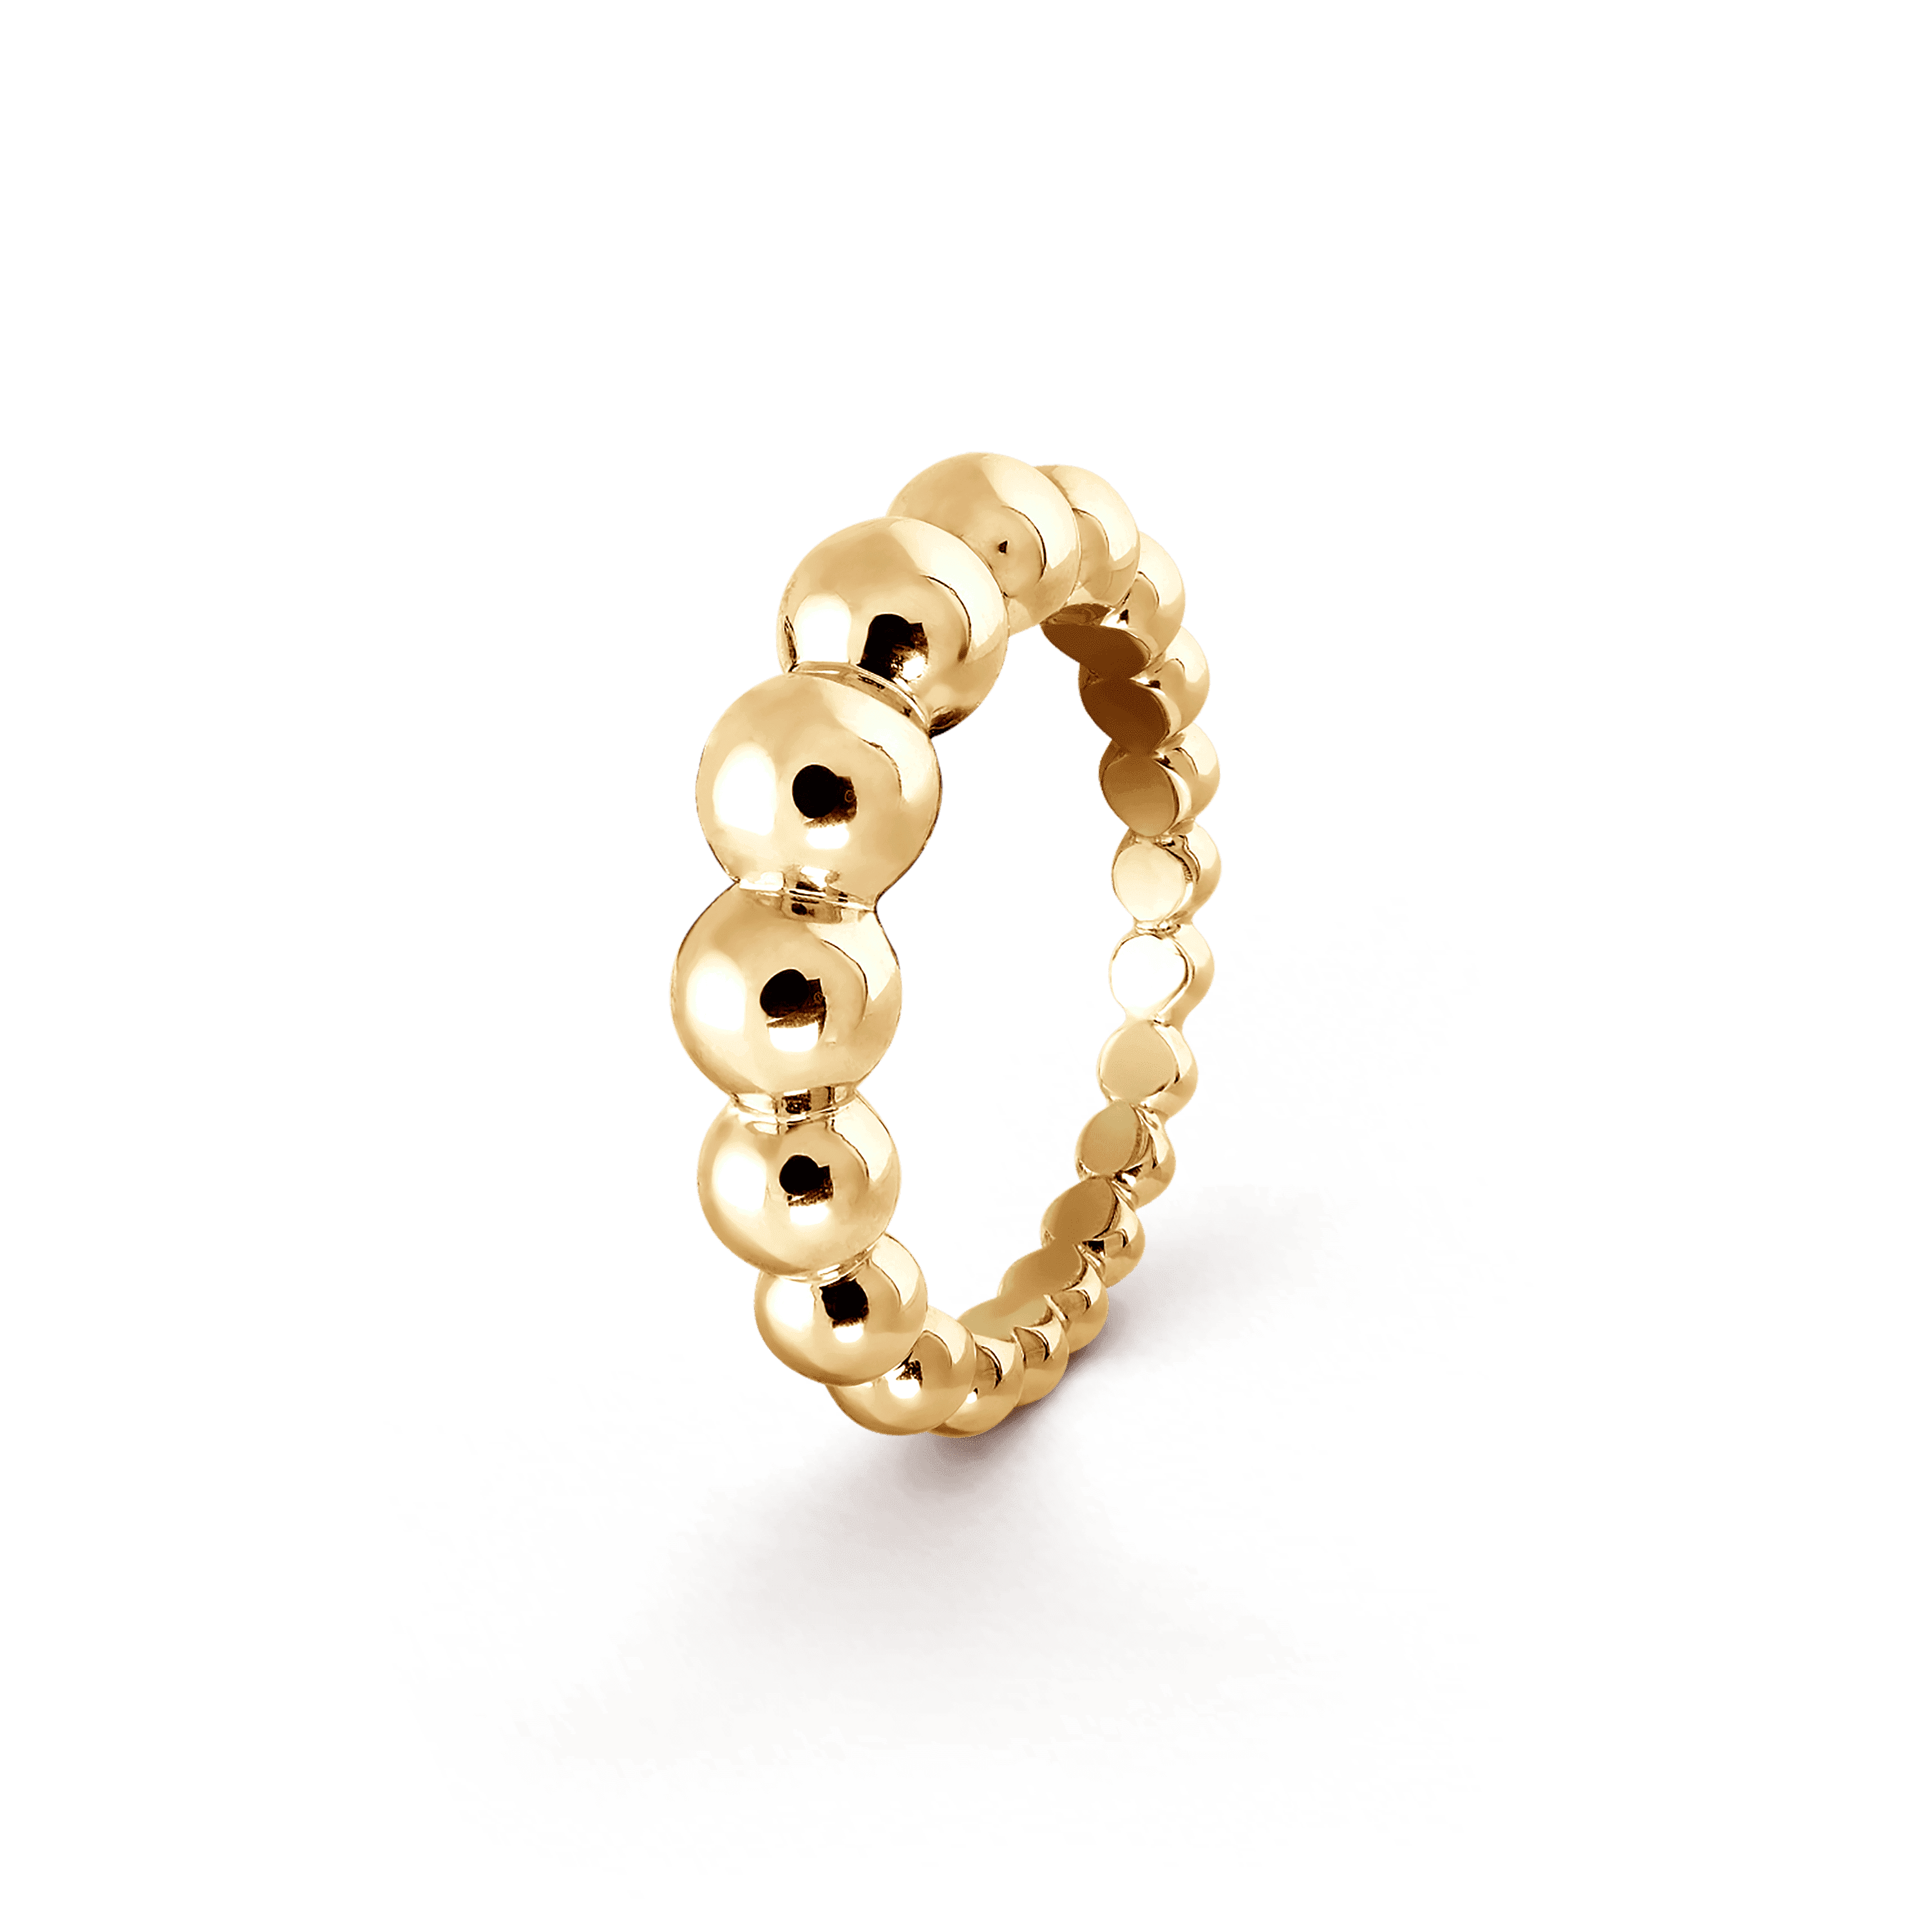 Perlée pearls of gold variation ring, - 3|4 View - VCARO5M000 - Van Cleef & Arpels